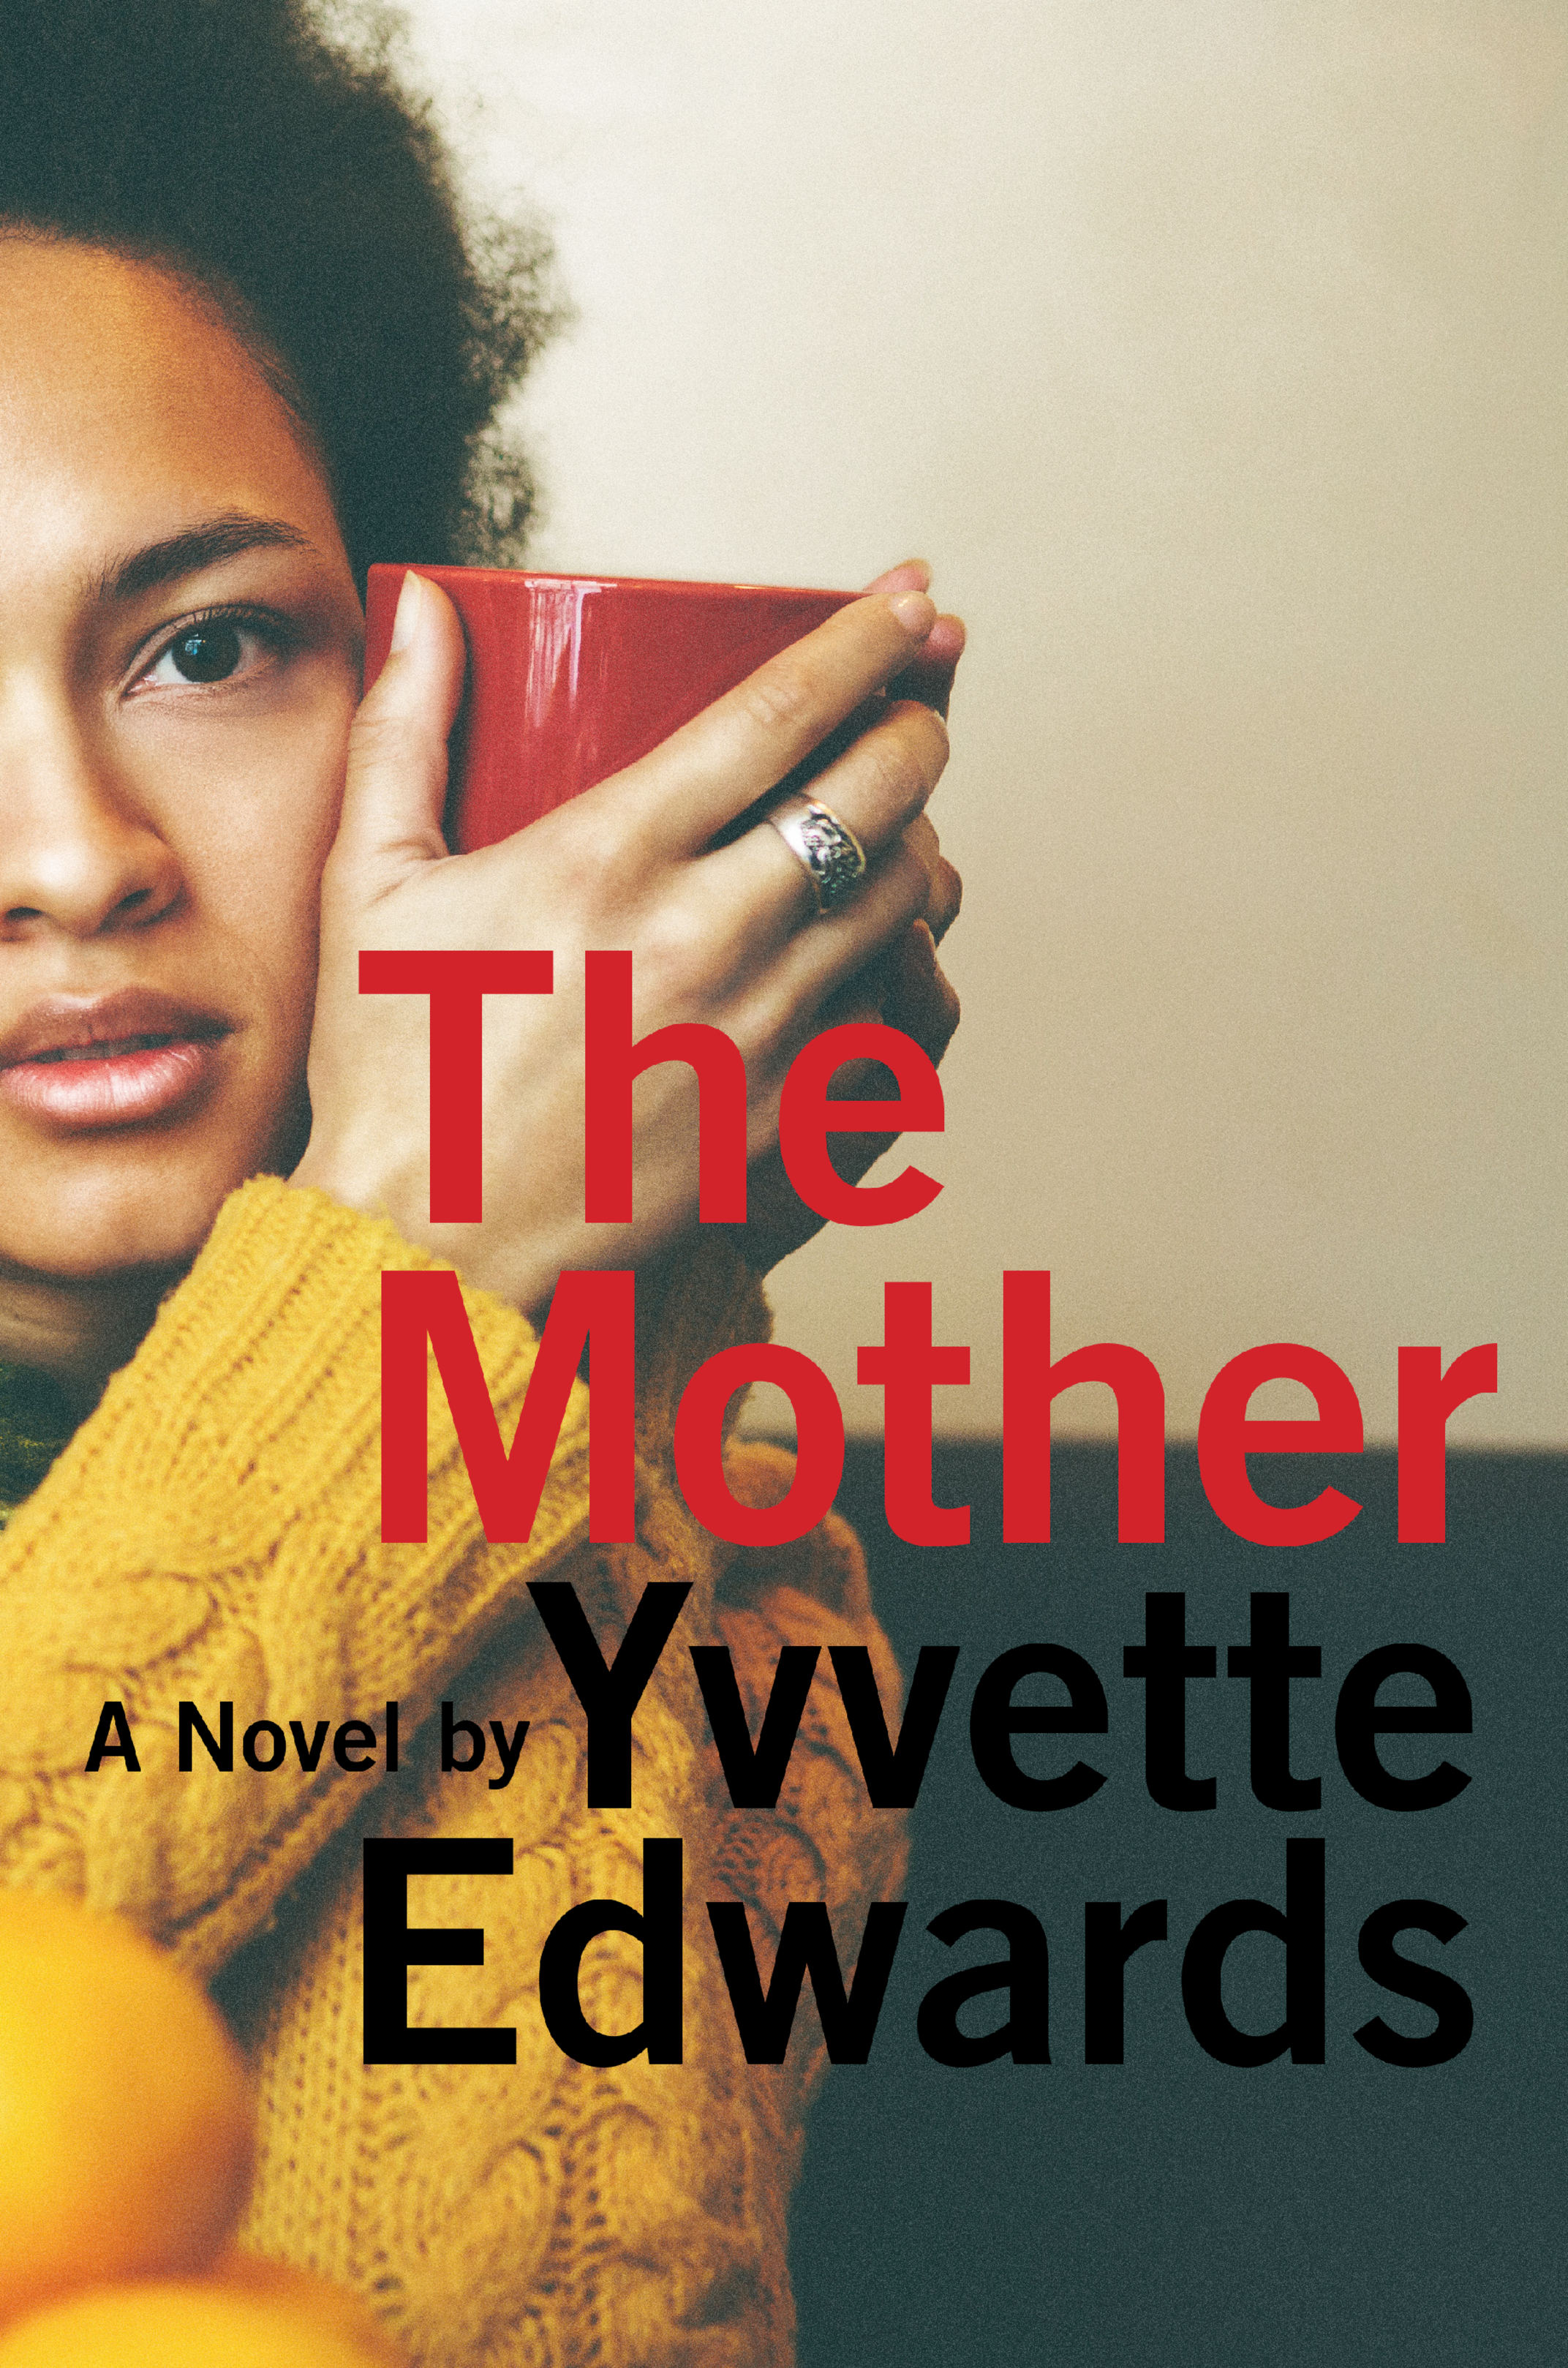 The Mother by Yvvette Edwards Amistad  256 pages